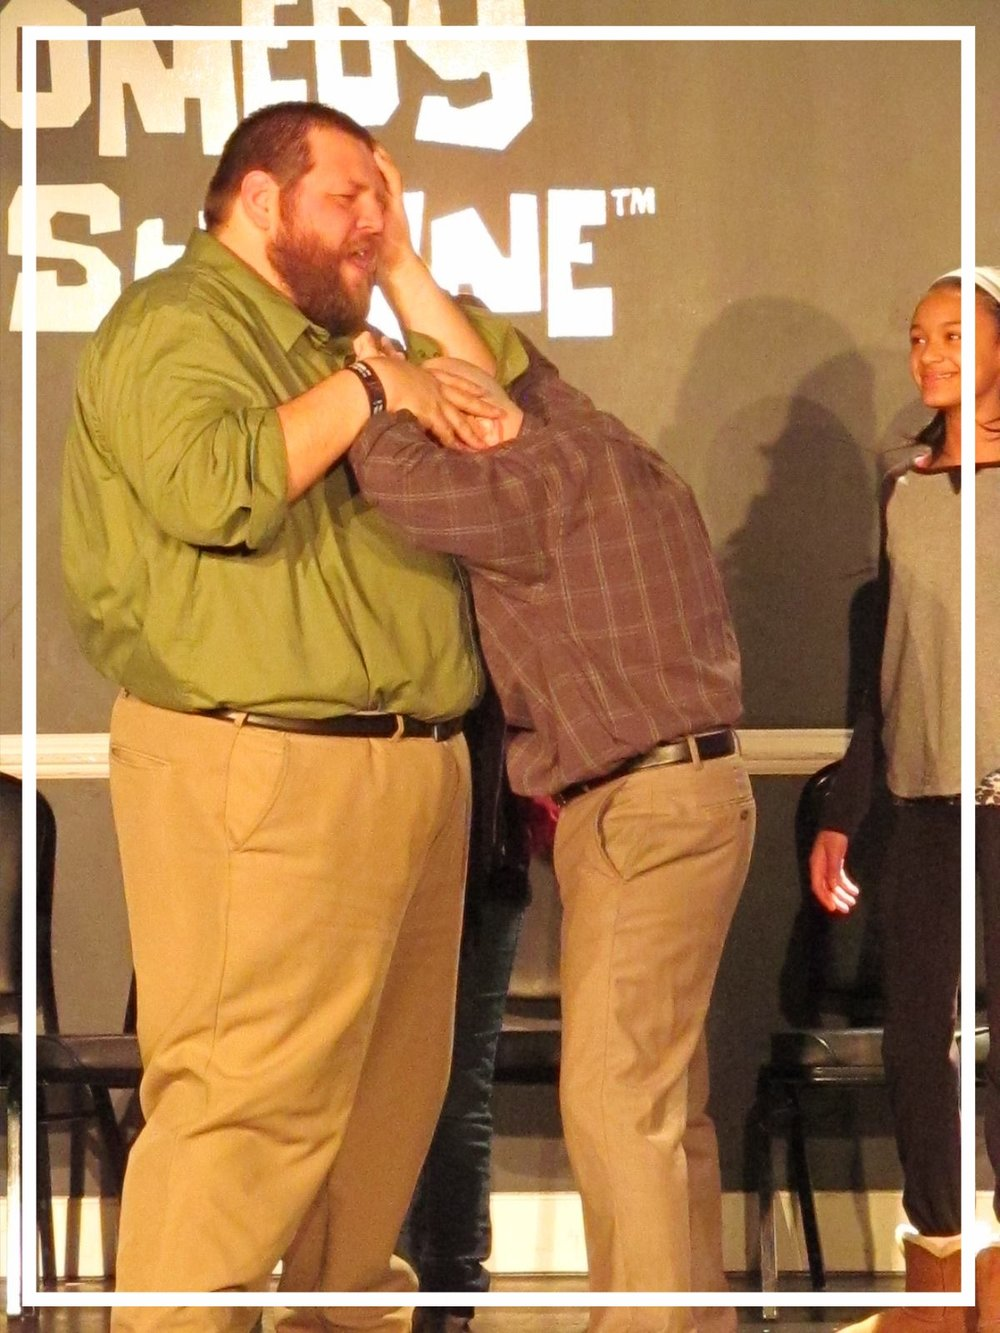 Founding members Dave Ebert and Ryan McChesney using their size difference to create comedy gold.